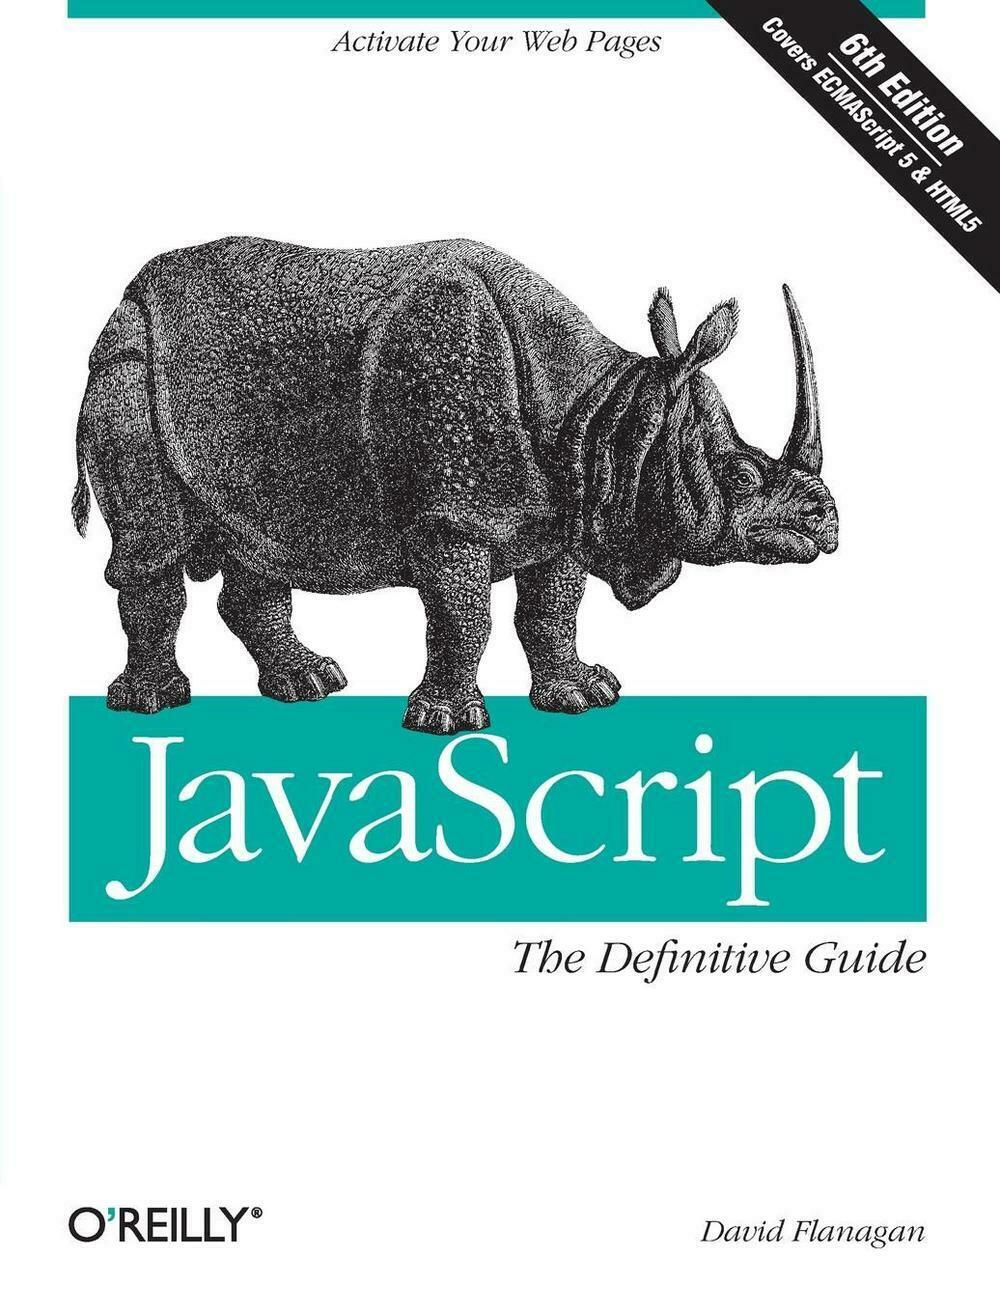 JavaScript: The Definitive Guide: Activate Your Web Pages by David Flanagan (Eng |